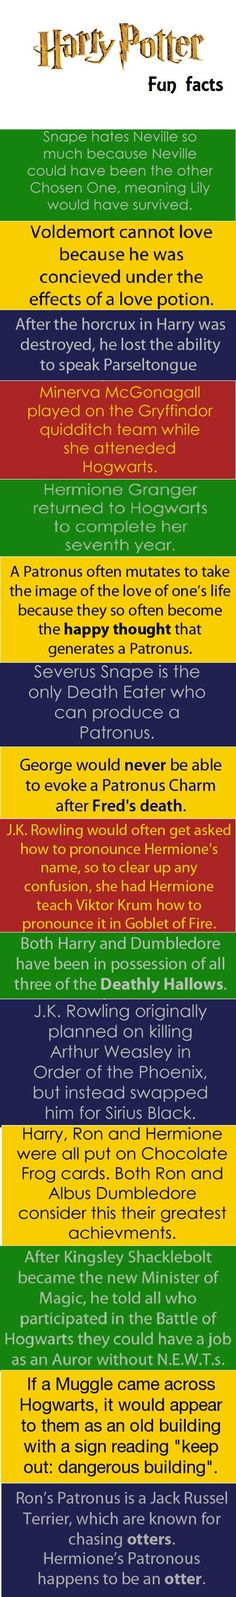 Harry Potter facts!